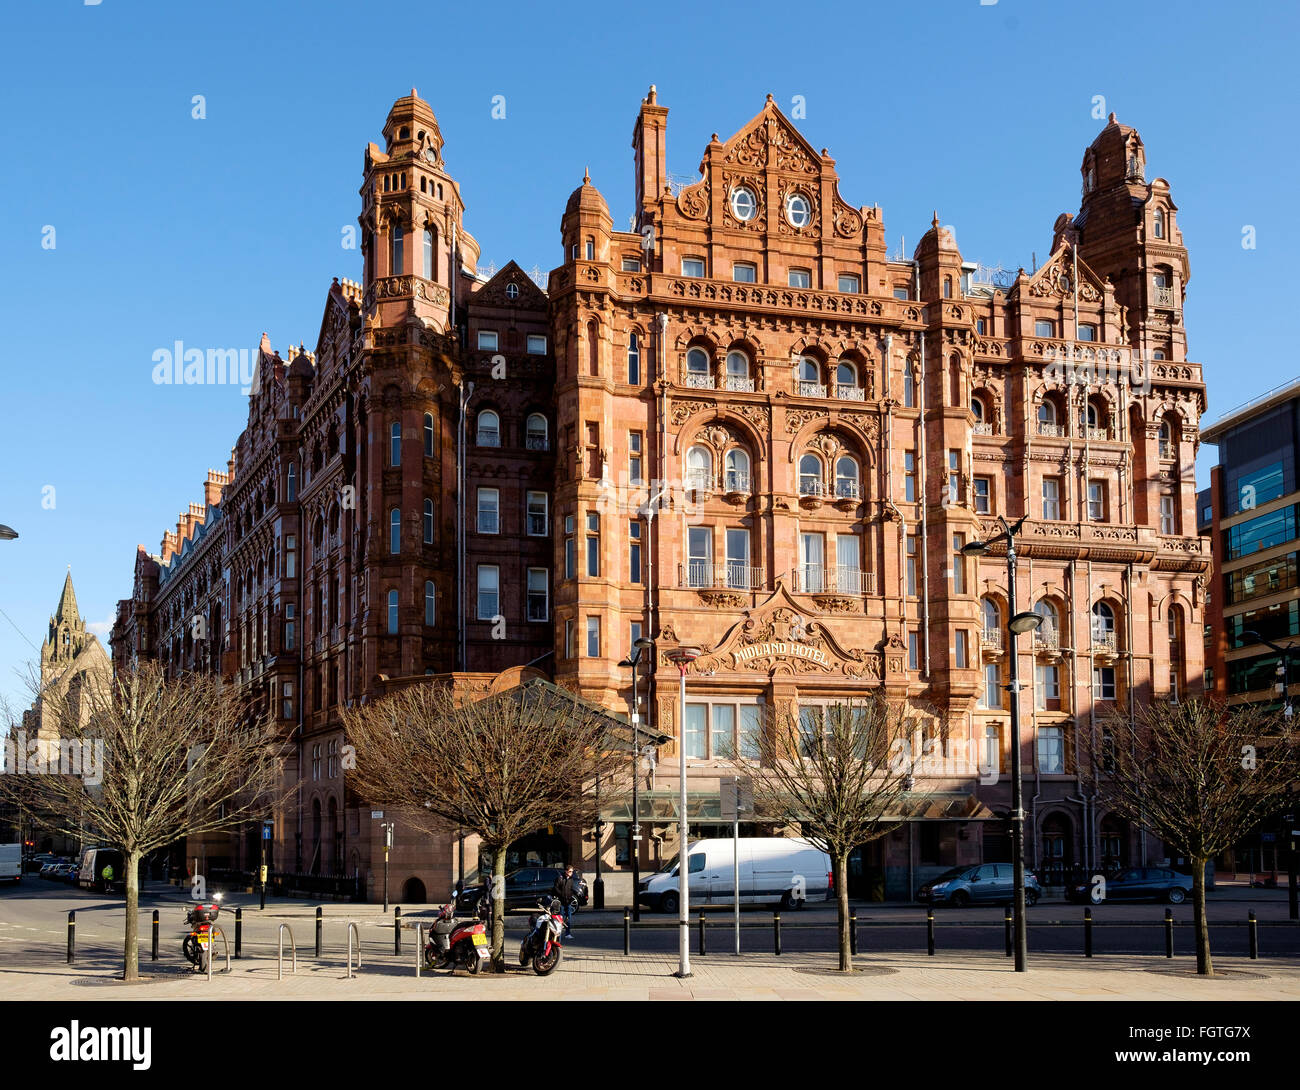 Manchester, UK - 15 February 2016: The Midland Hotel, facing the Manchester Central Convention Complex - Stock Image